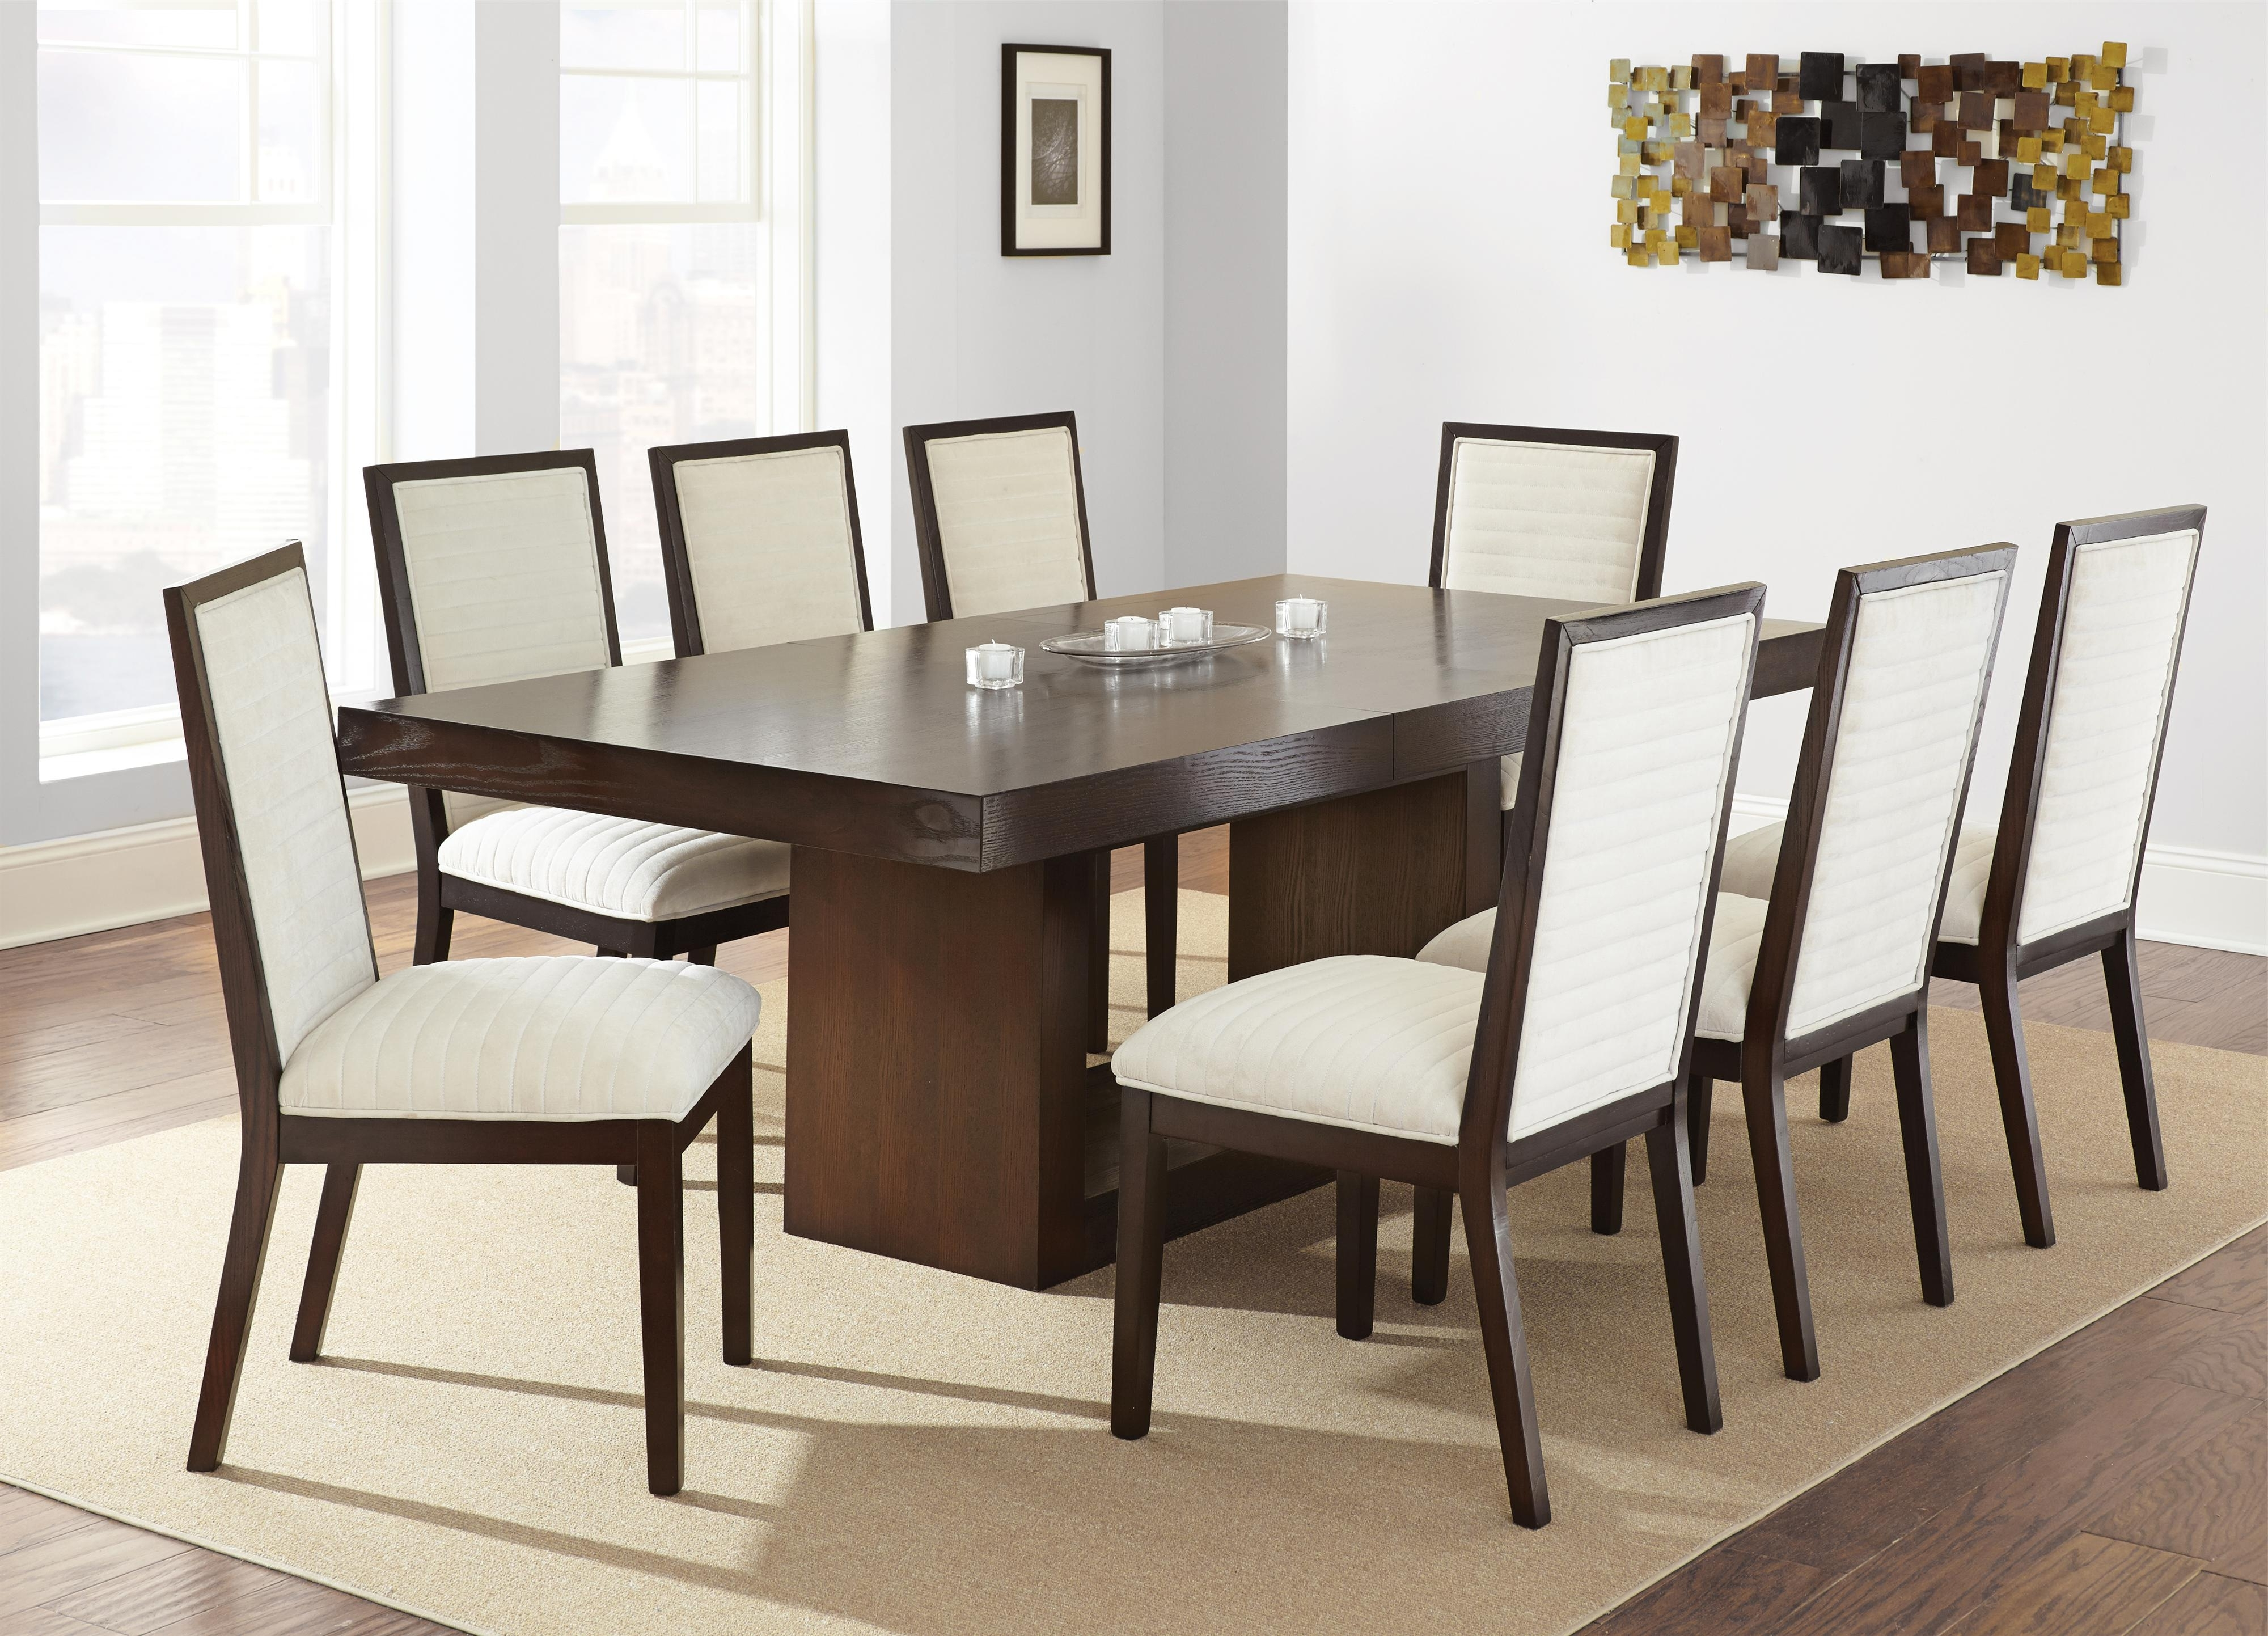 Jaxon 5 Piece Round Dining Sets With Upholstered Chairs Intended For Newest Steve Silver Antonio 7 Piece Dining Set (Gallery 23 of 25)